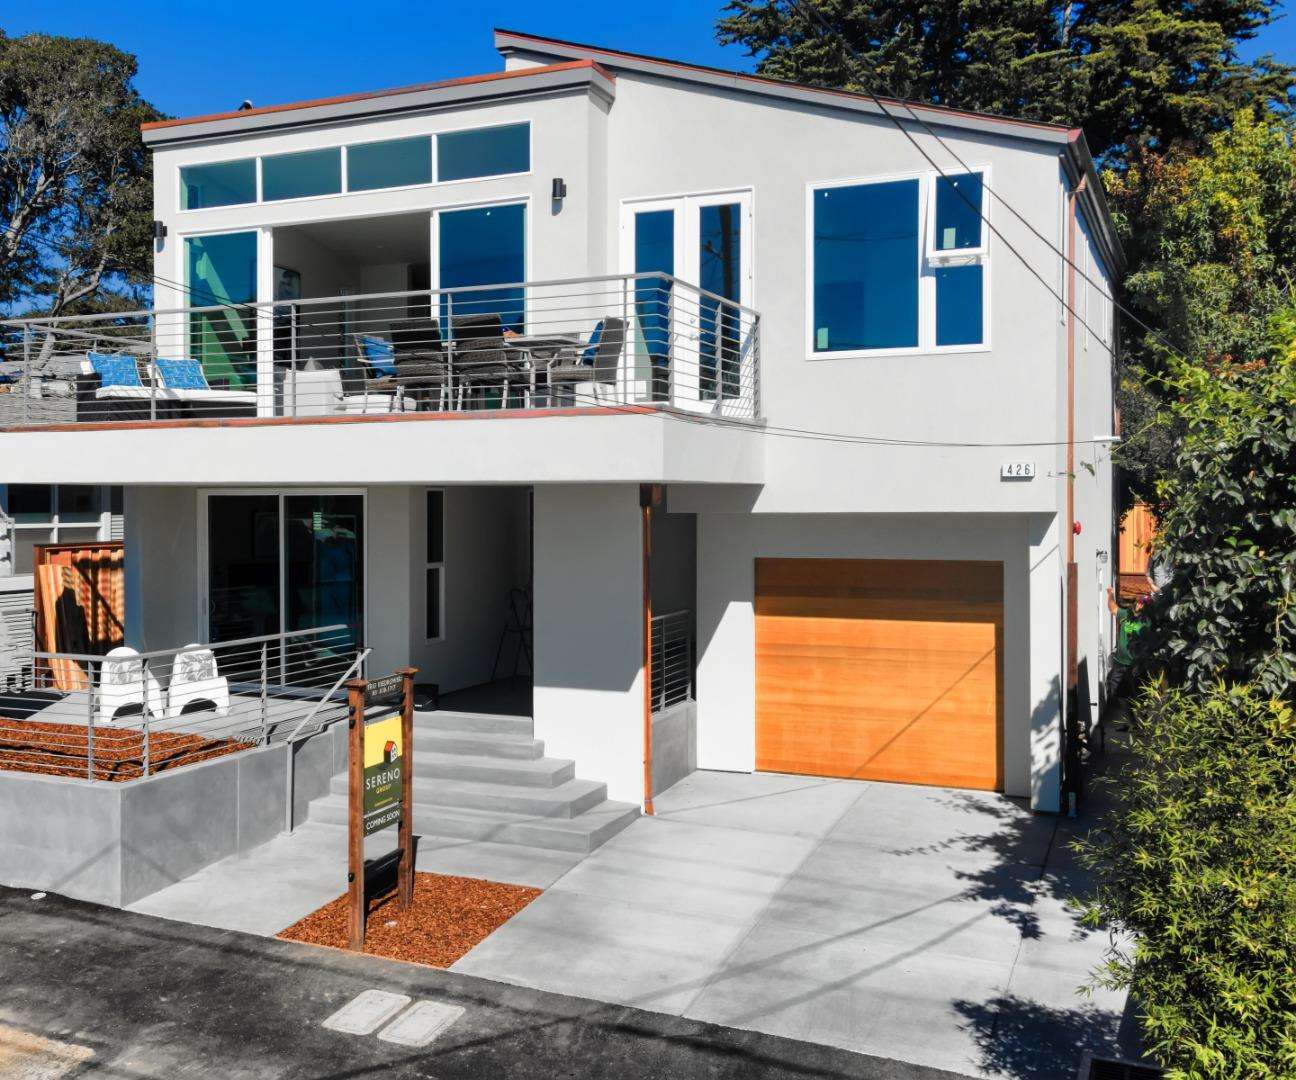 """Brand New Construction!!!  Features include: Tile floors throughout with 6 different zone-radiant heating, All Wolf appliances, Sub Zero refrigerator, quartz countertops throughout,  Ocean views from 1st & 2nd floors, oversized 1 car garage with 12 foot ceilings- pre wired for 220 electric car charging, copper downspouts.  Short walk to """"beach gate"""" path leading down to Seacliff State Beach, restaurants, shops, coffee."""